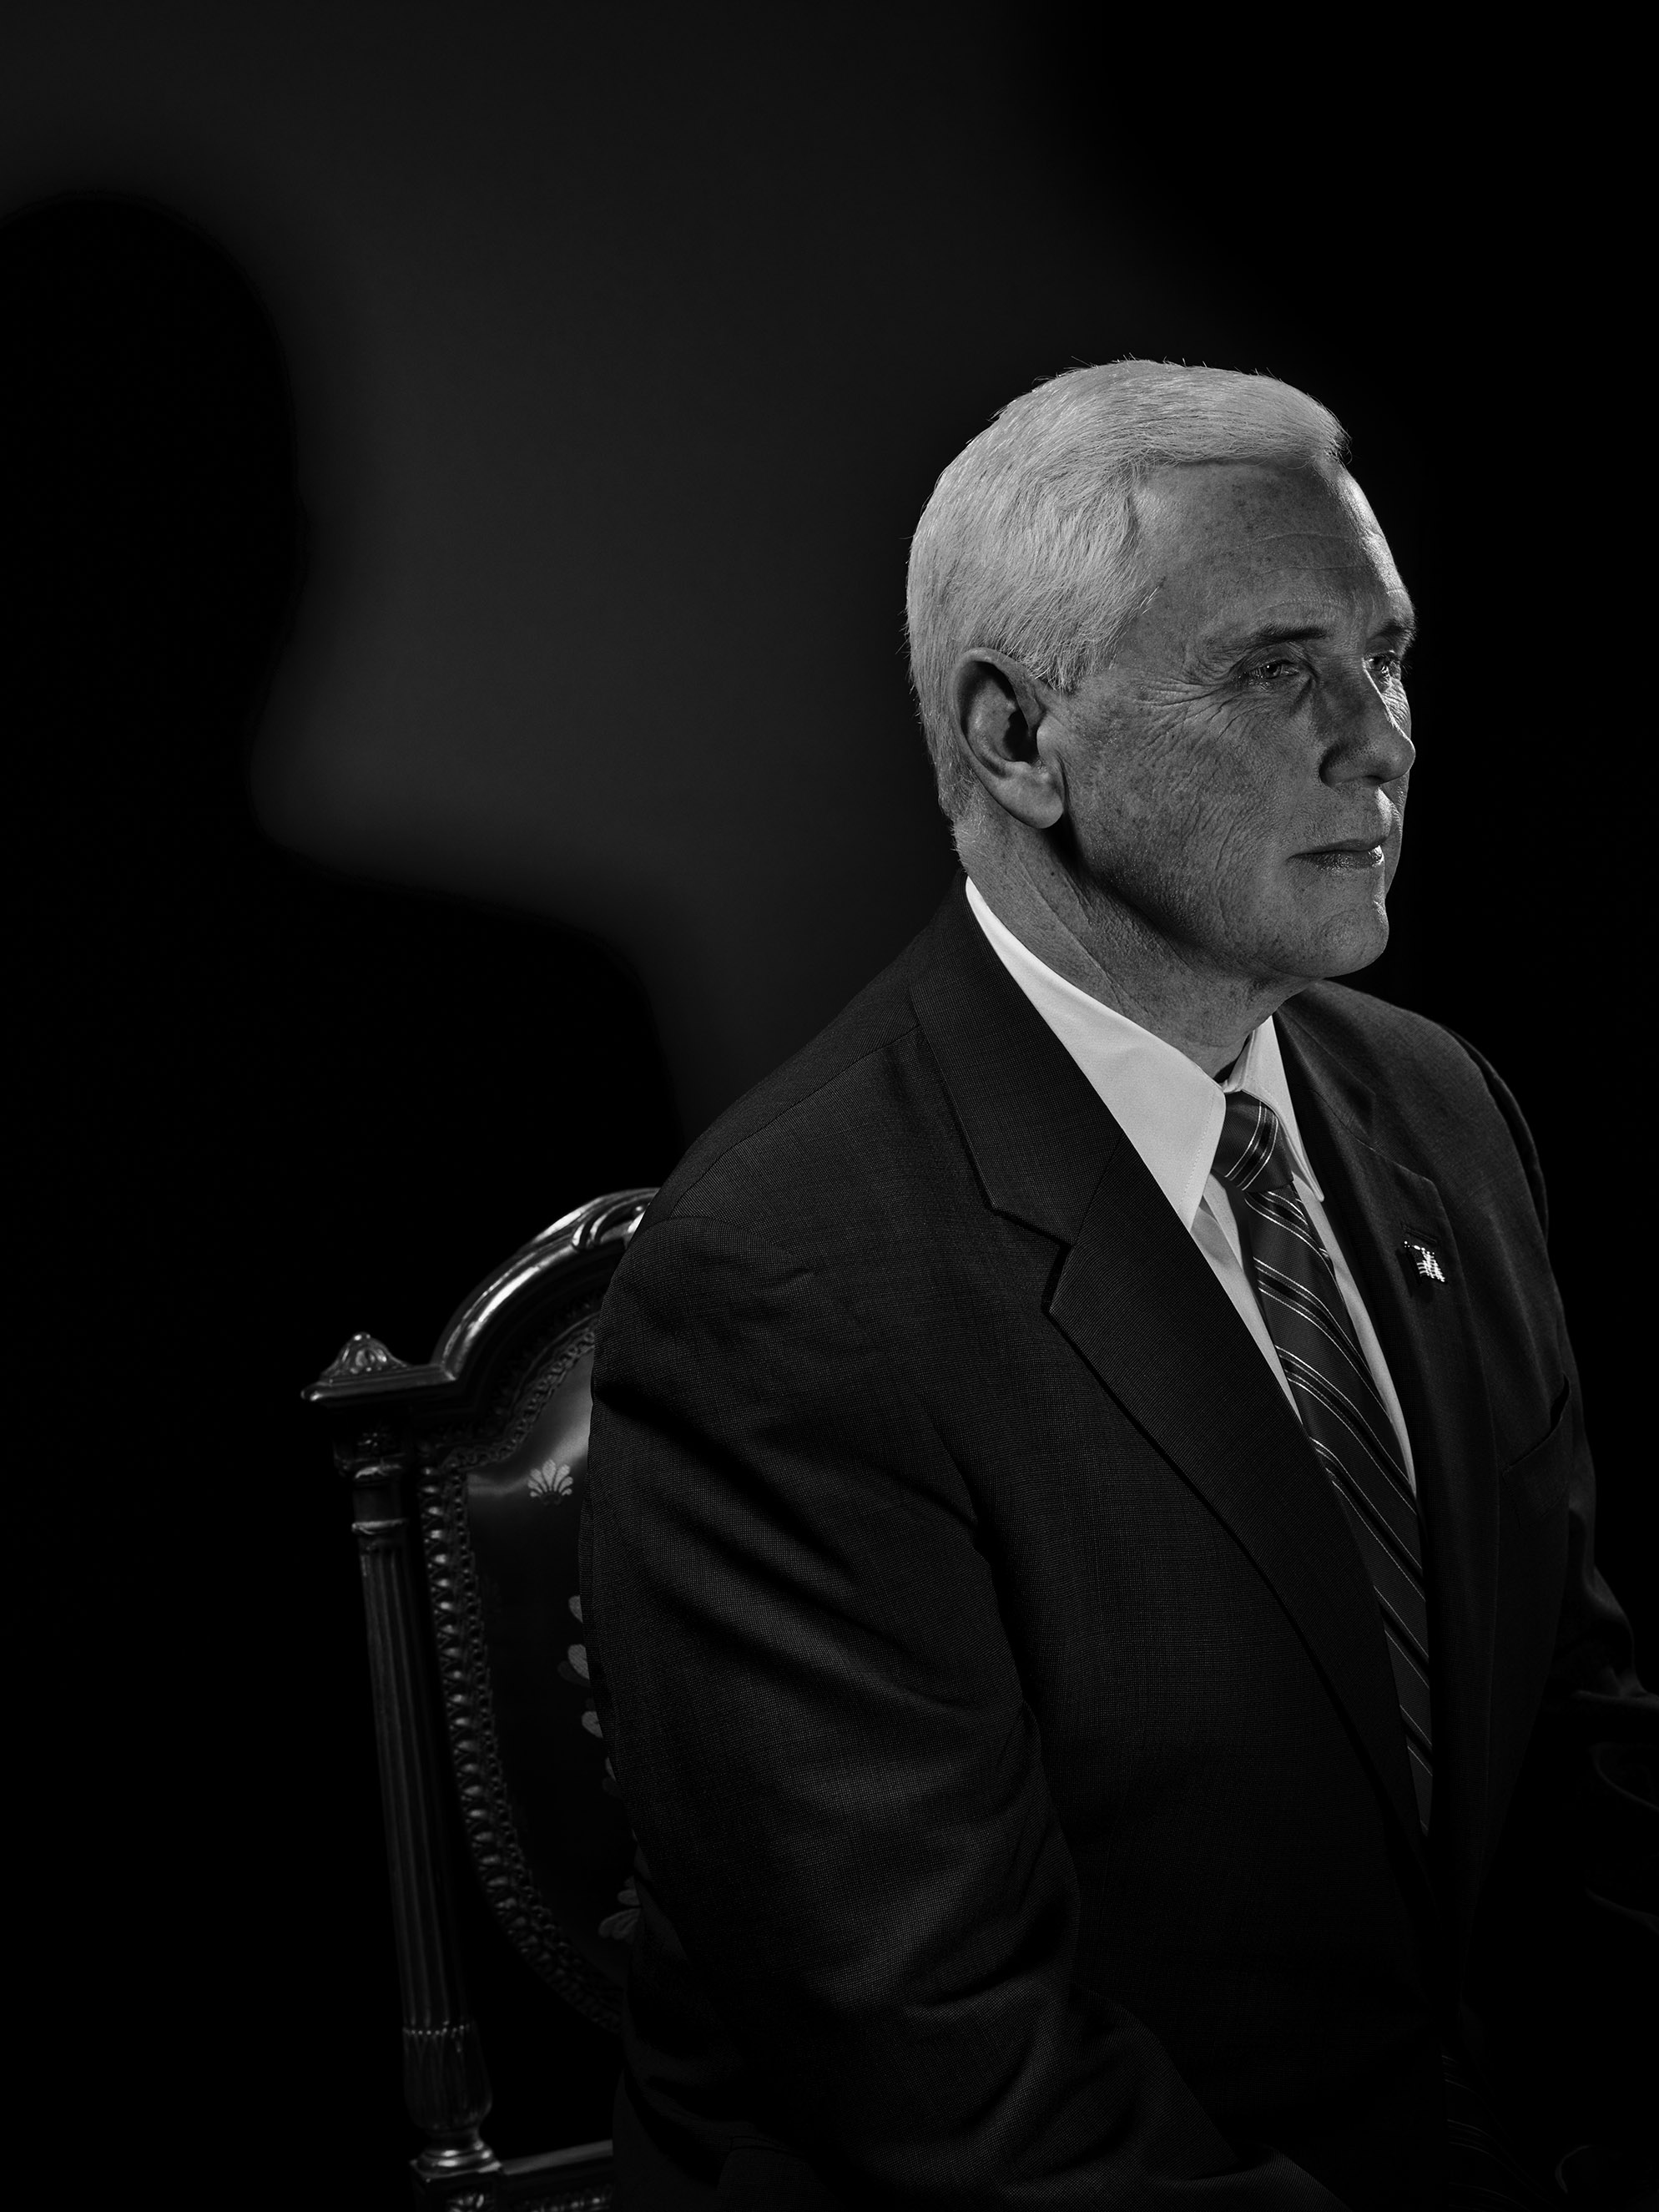 The True Believer                               A devout evangelical Christian and a former leader in the U.S. House, Vice President–elect Mike Pence will help Trump navigate the agendas of conservative lawmakers and activists.